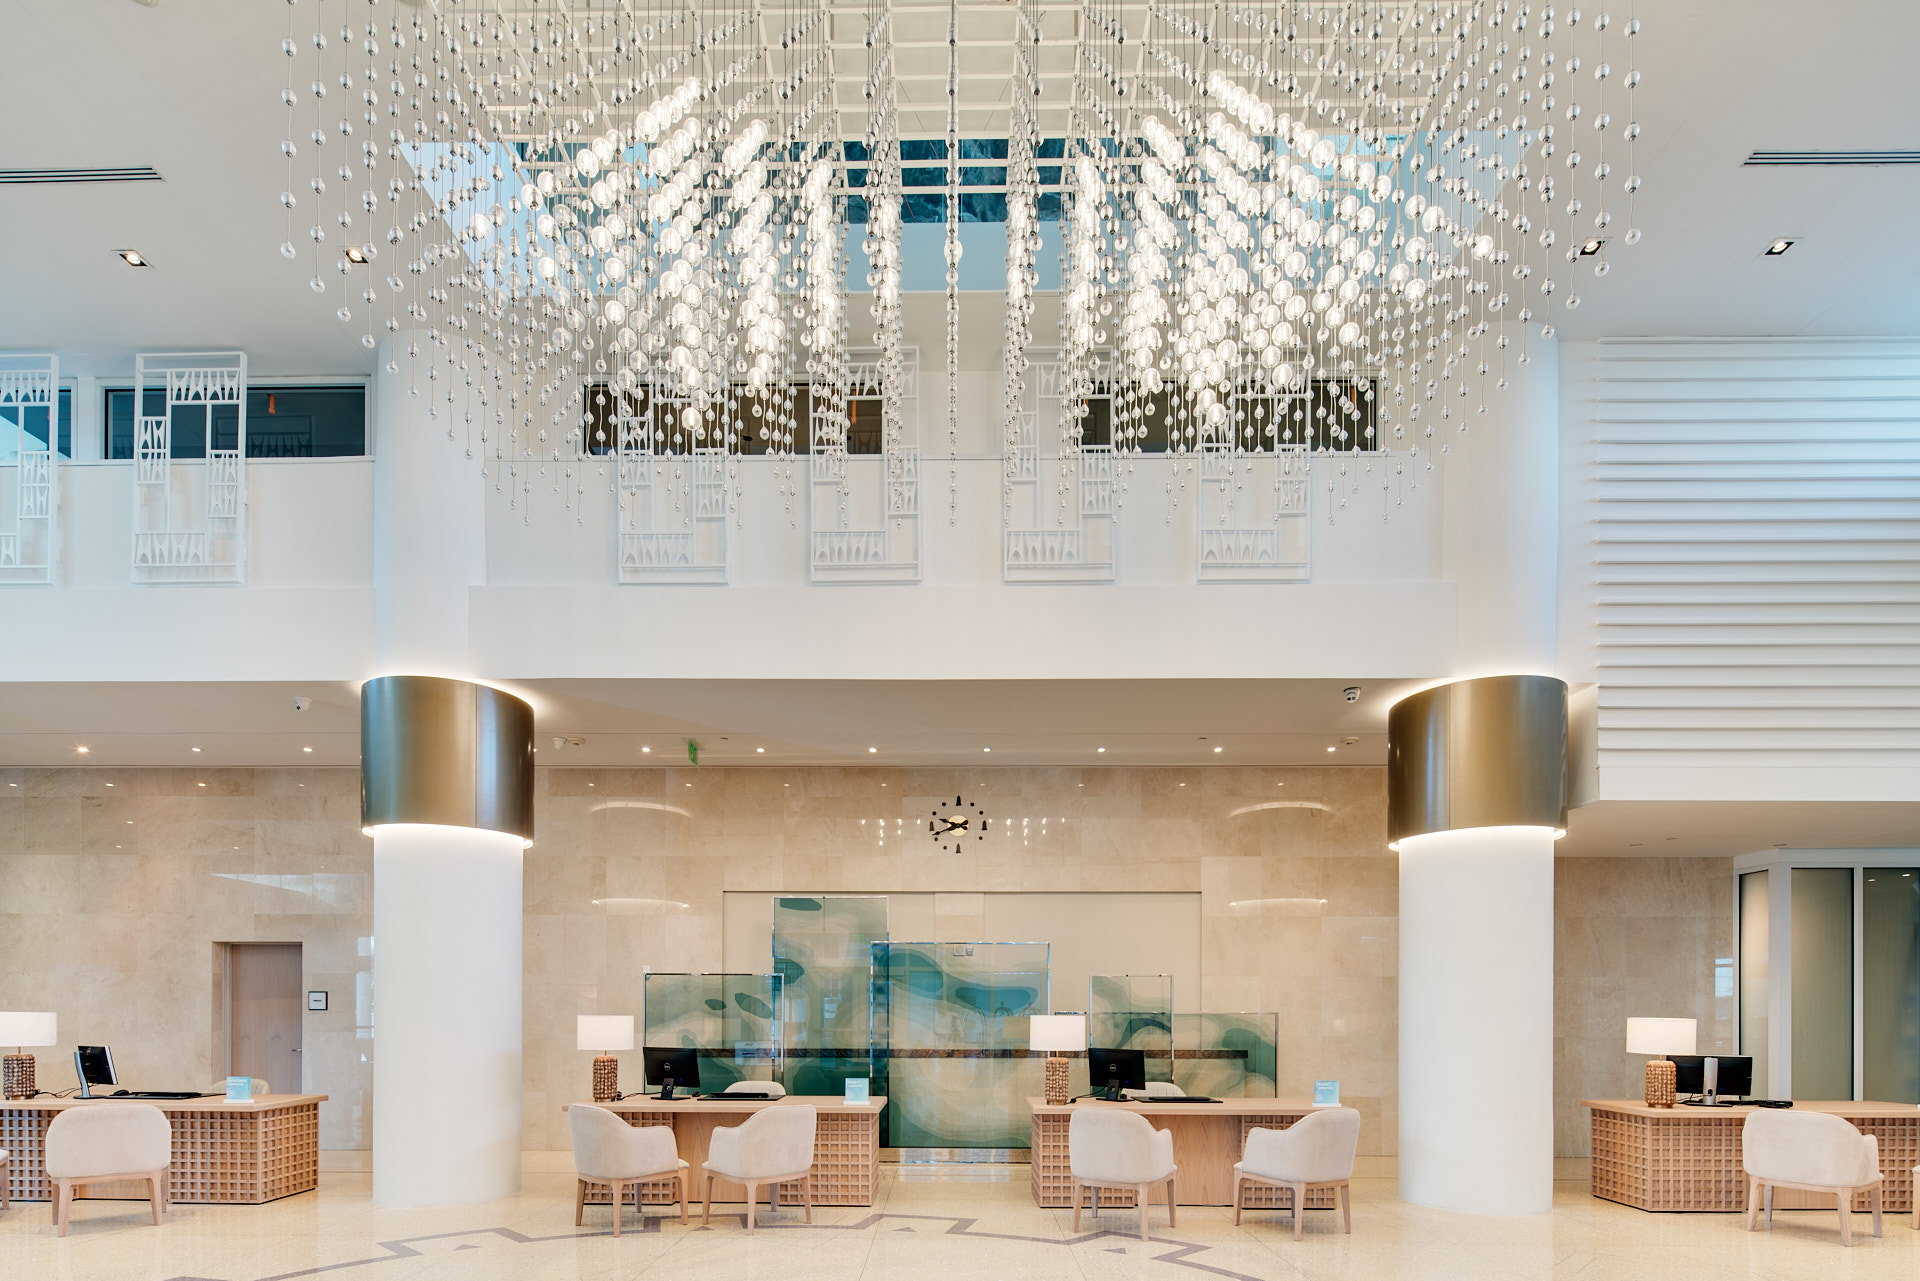 Lobby shot of the Carillon Miami